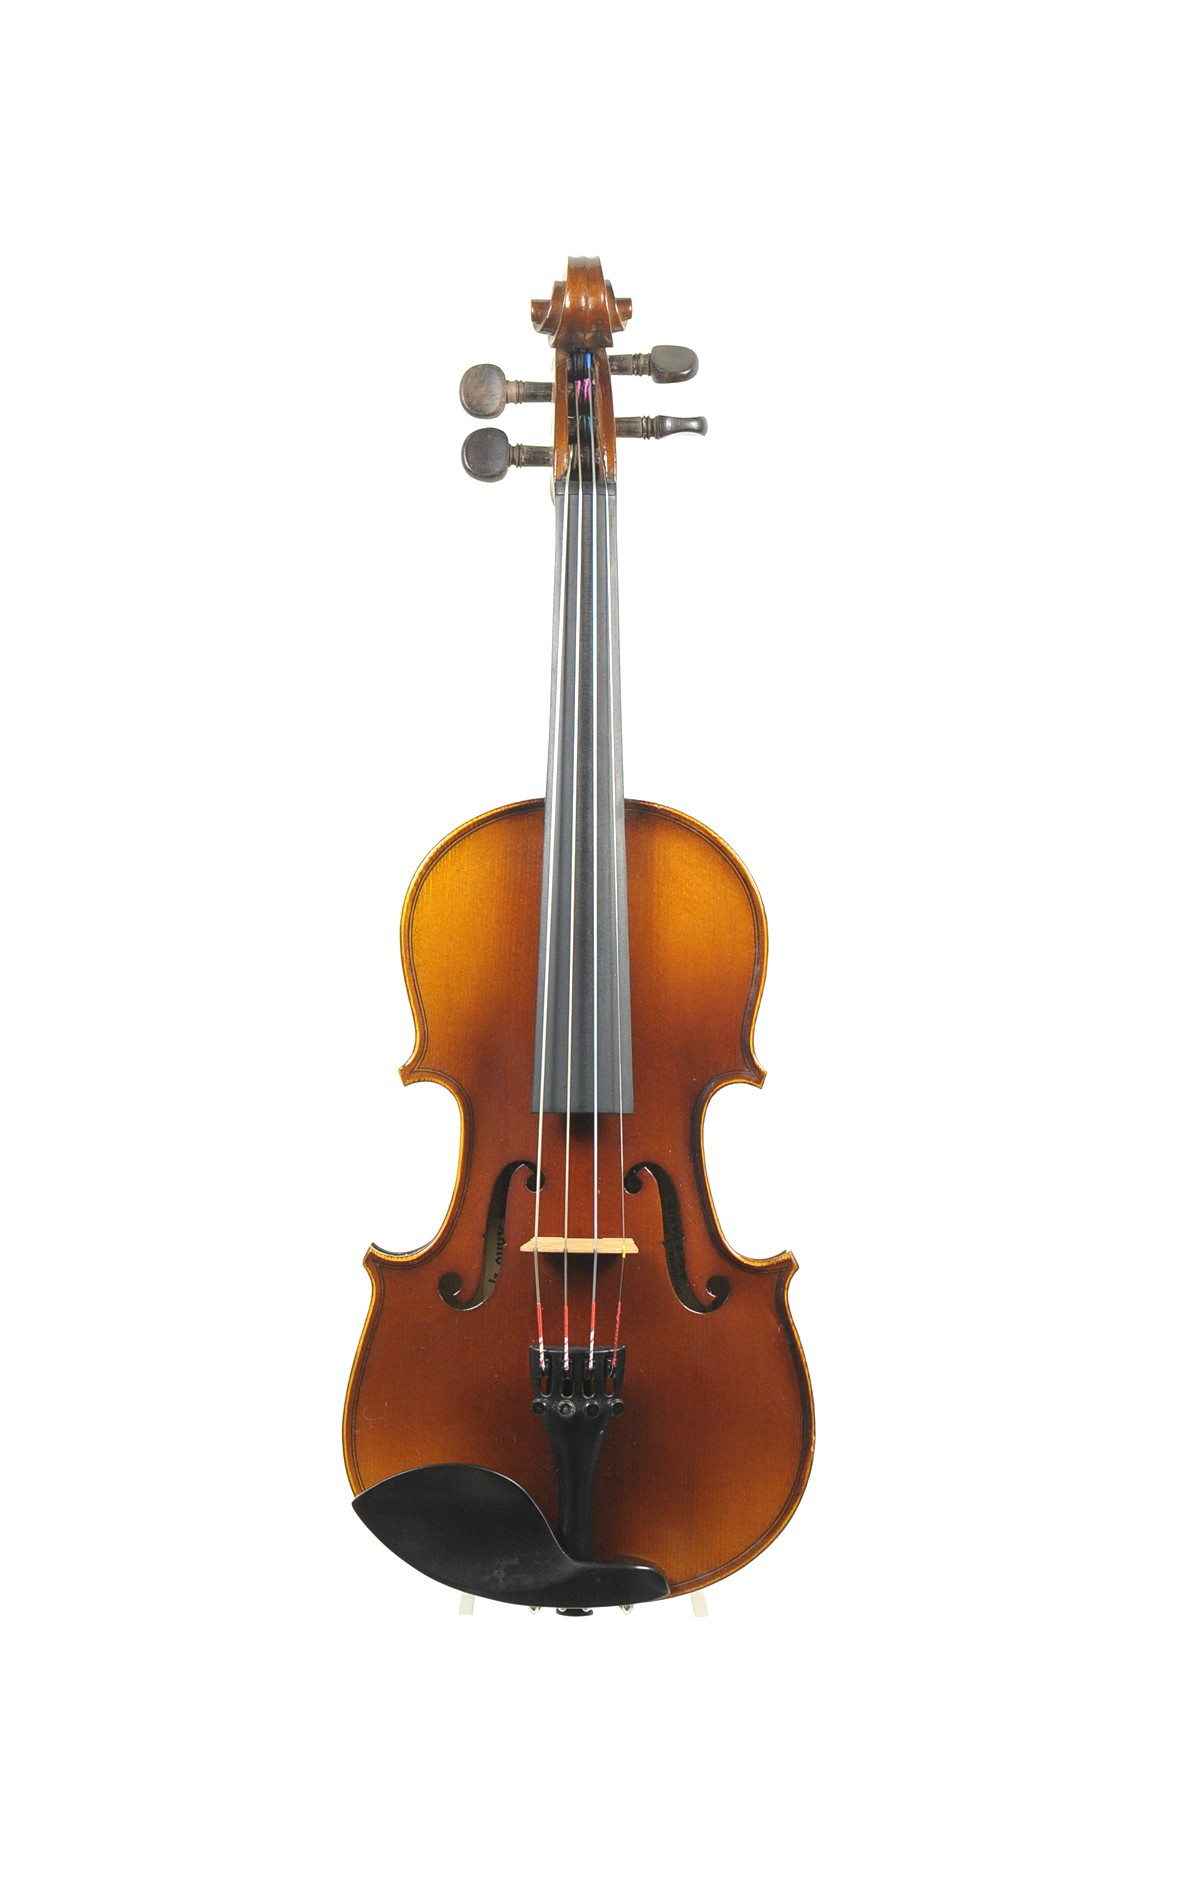 1/8 violin, French, approx. 1900, Paul Beuscher - top view